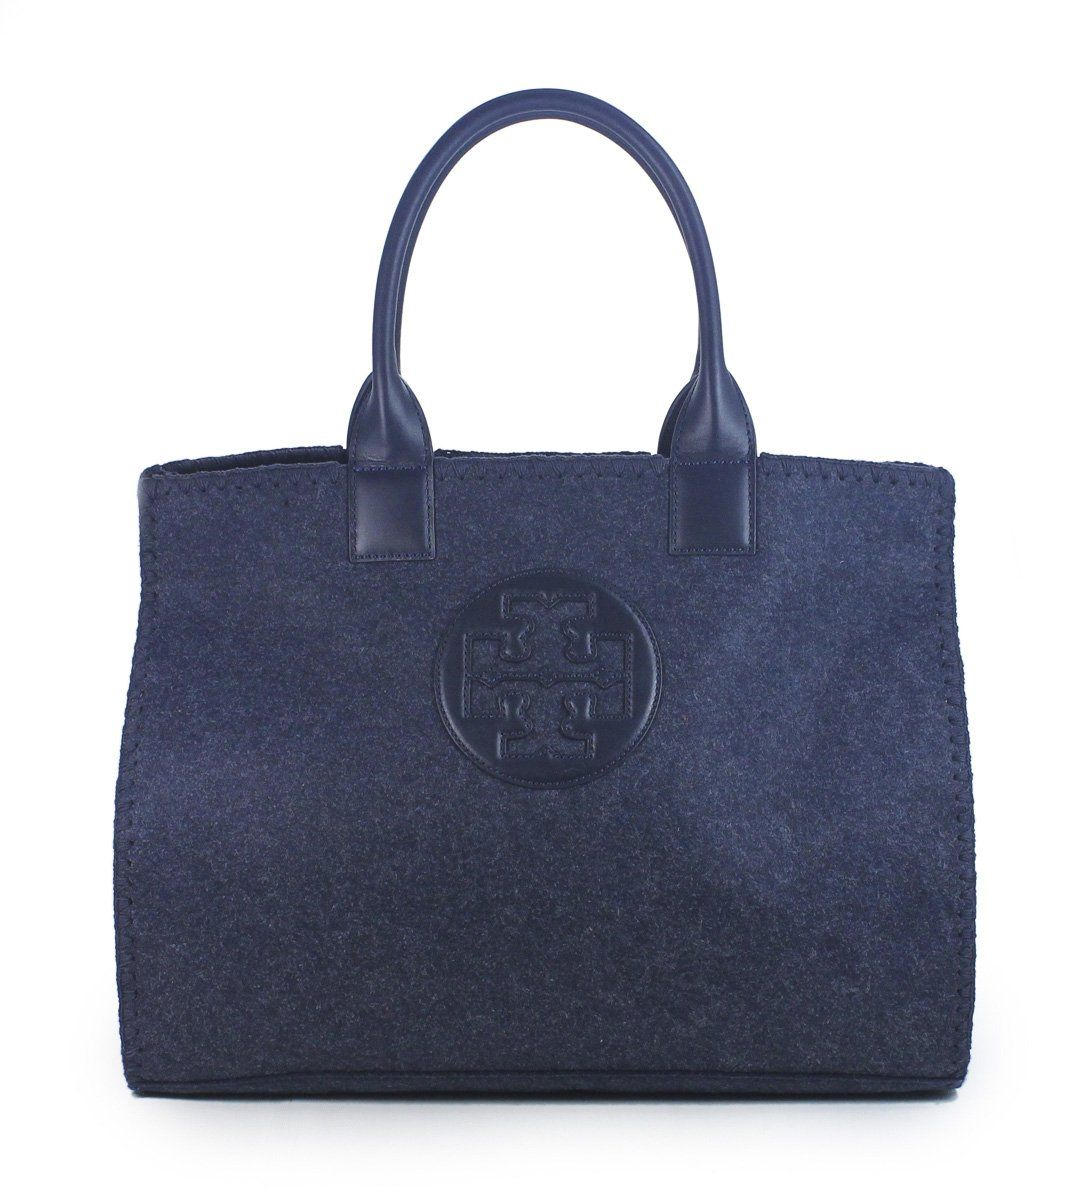 ed72654a96d Tory Burch Ella Stitched Tote in Tory Navy